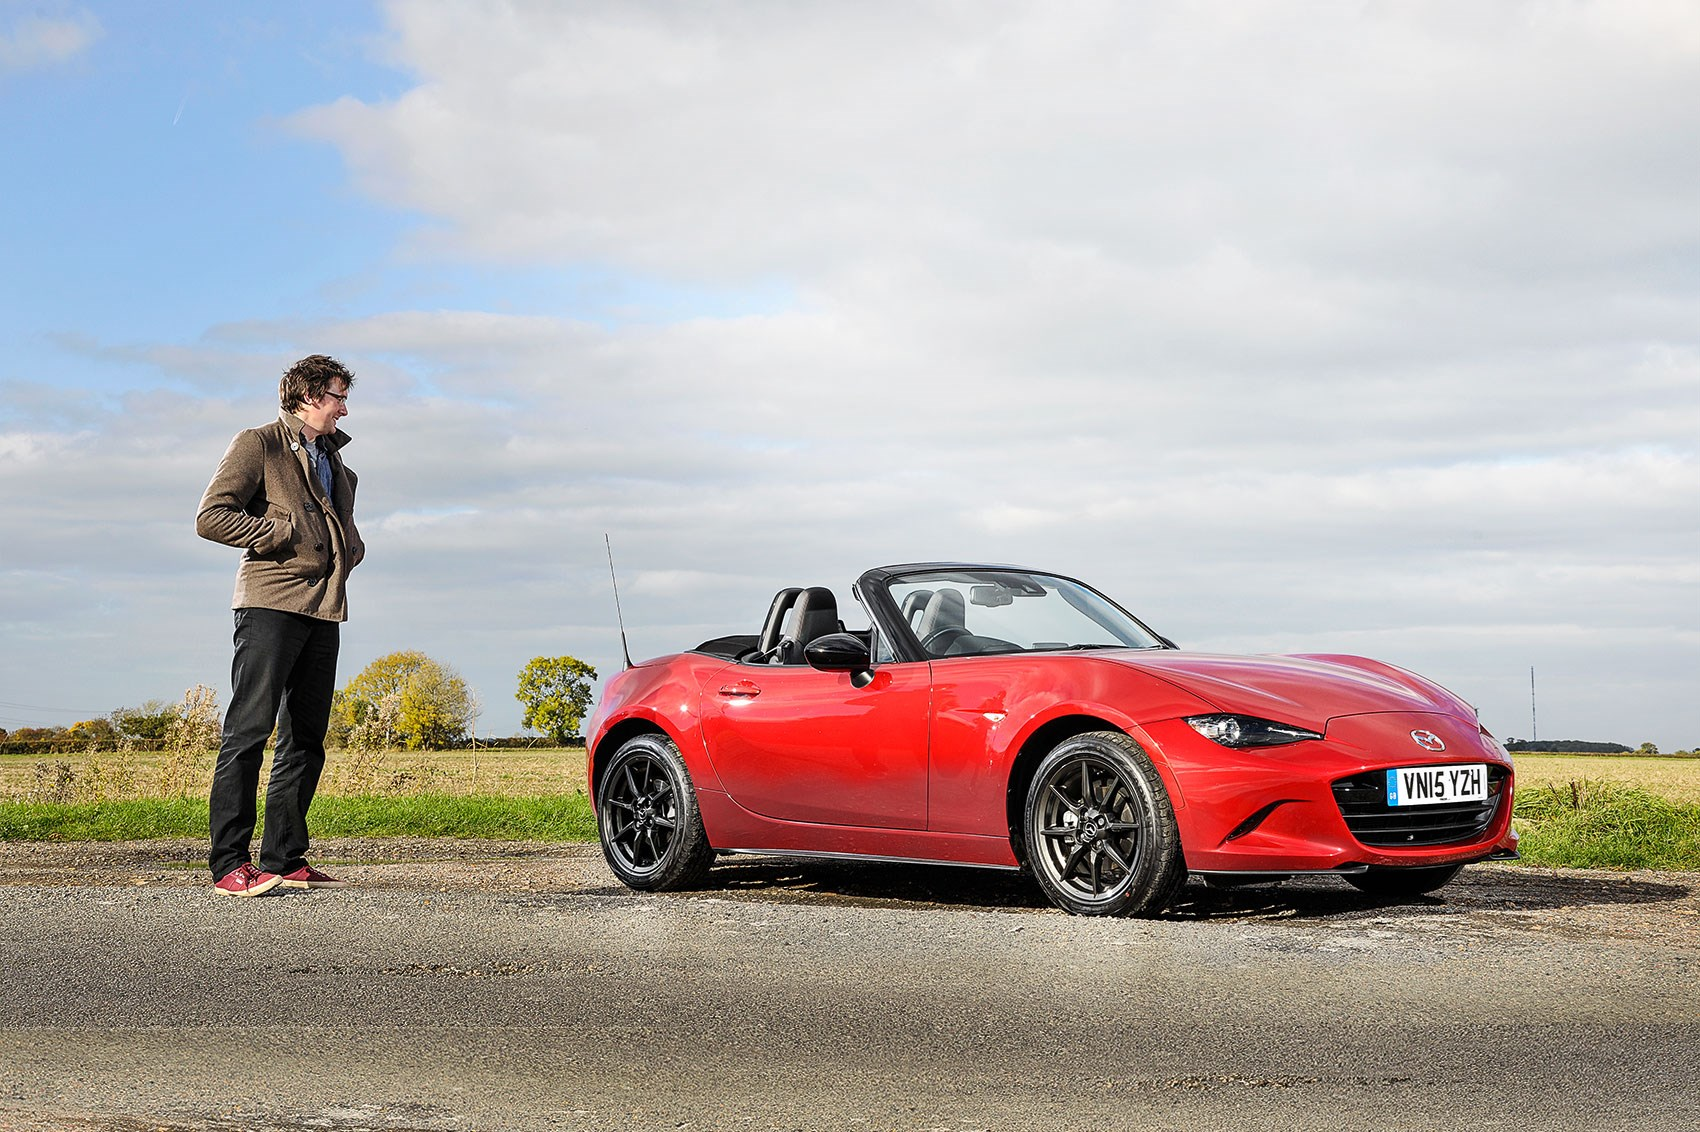 CAR's CJ Hubbard meets our long-term Mazda MX-5. Love is in the air